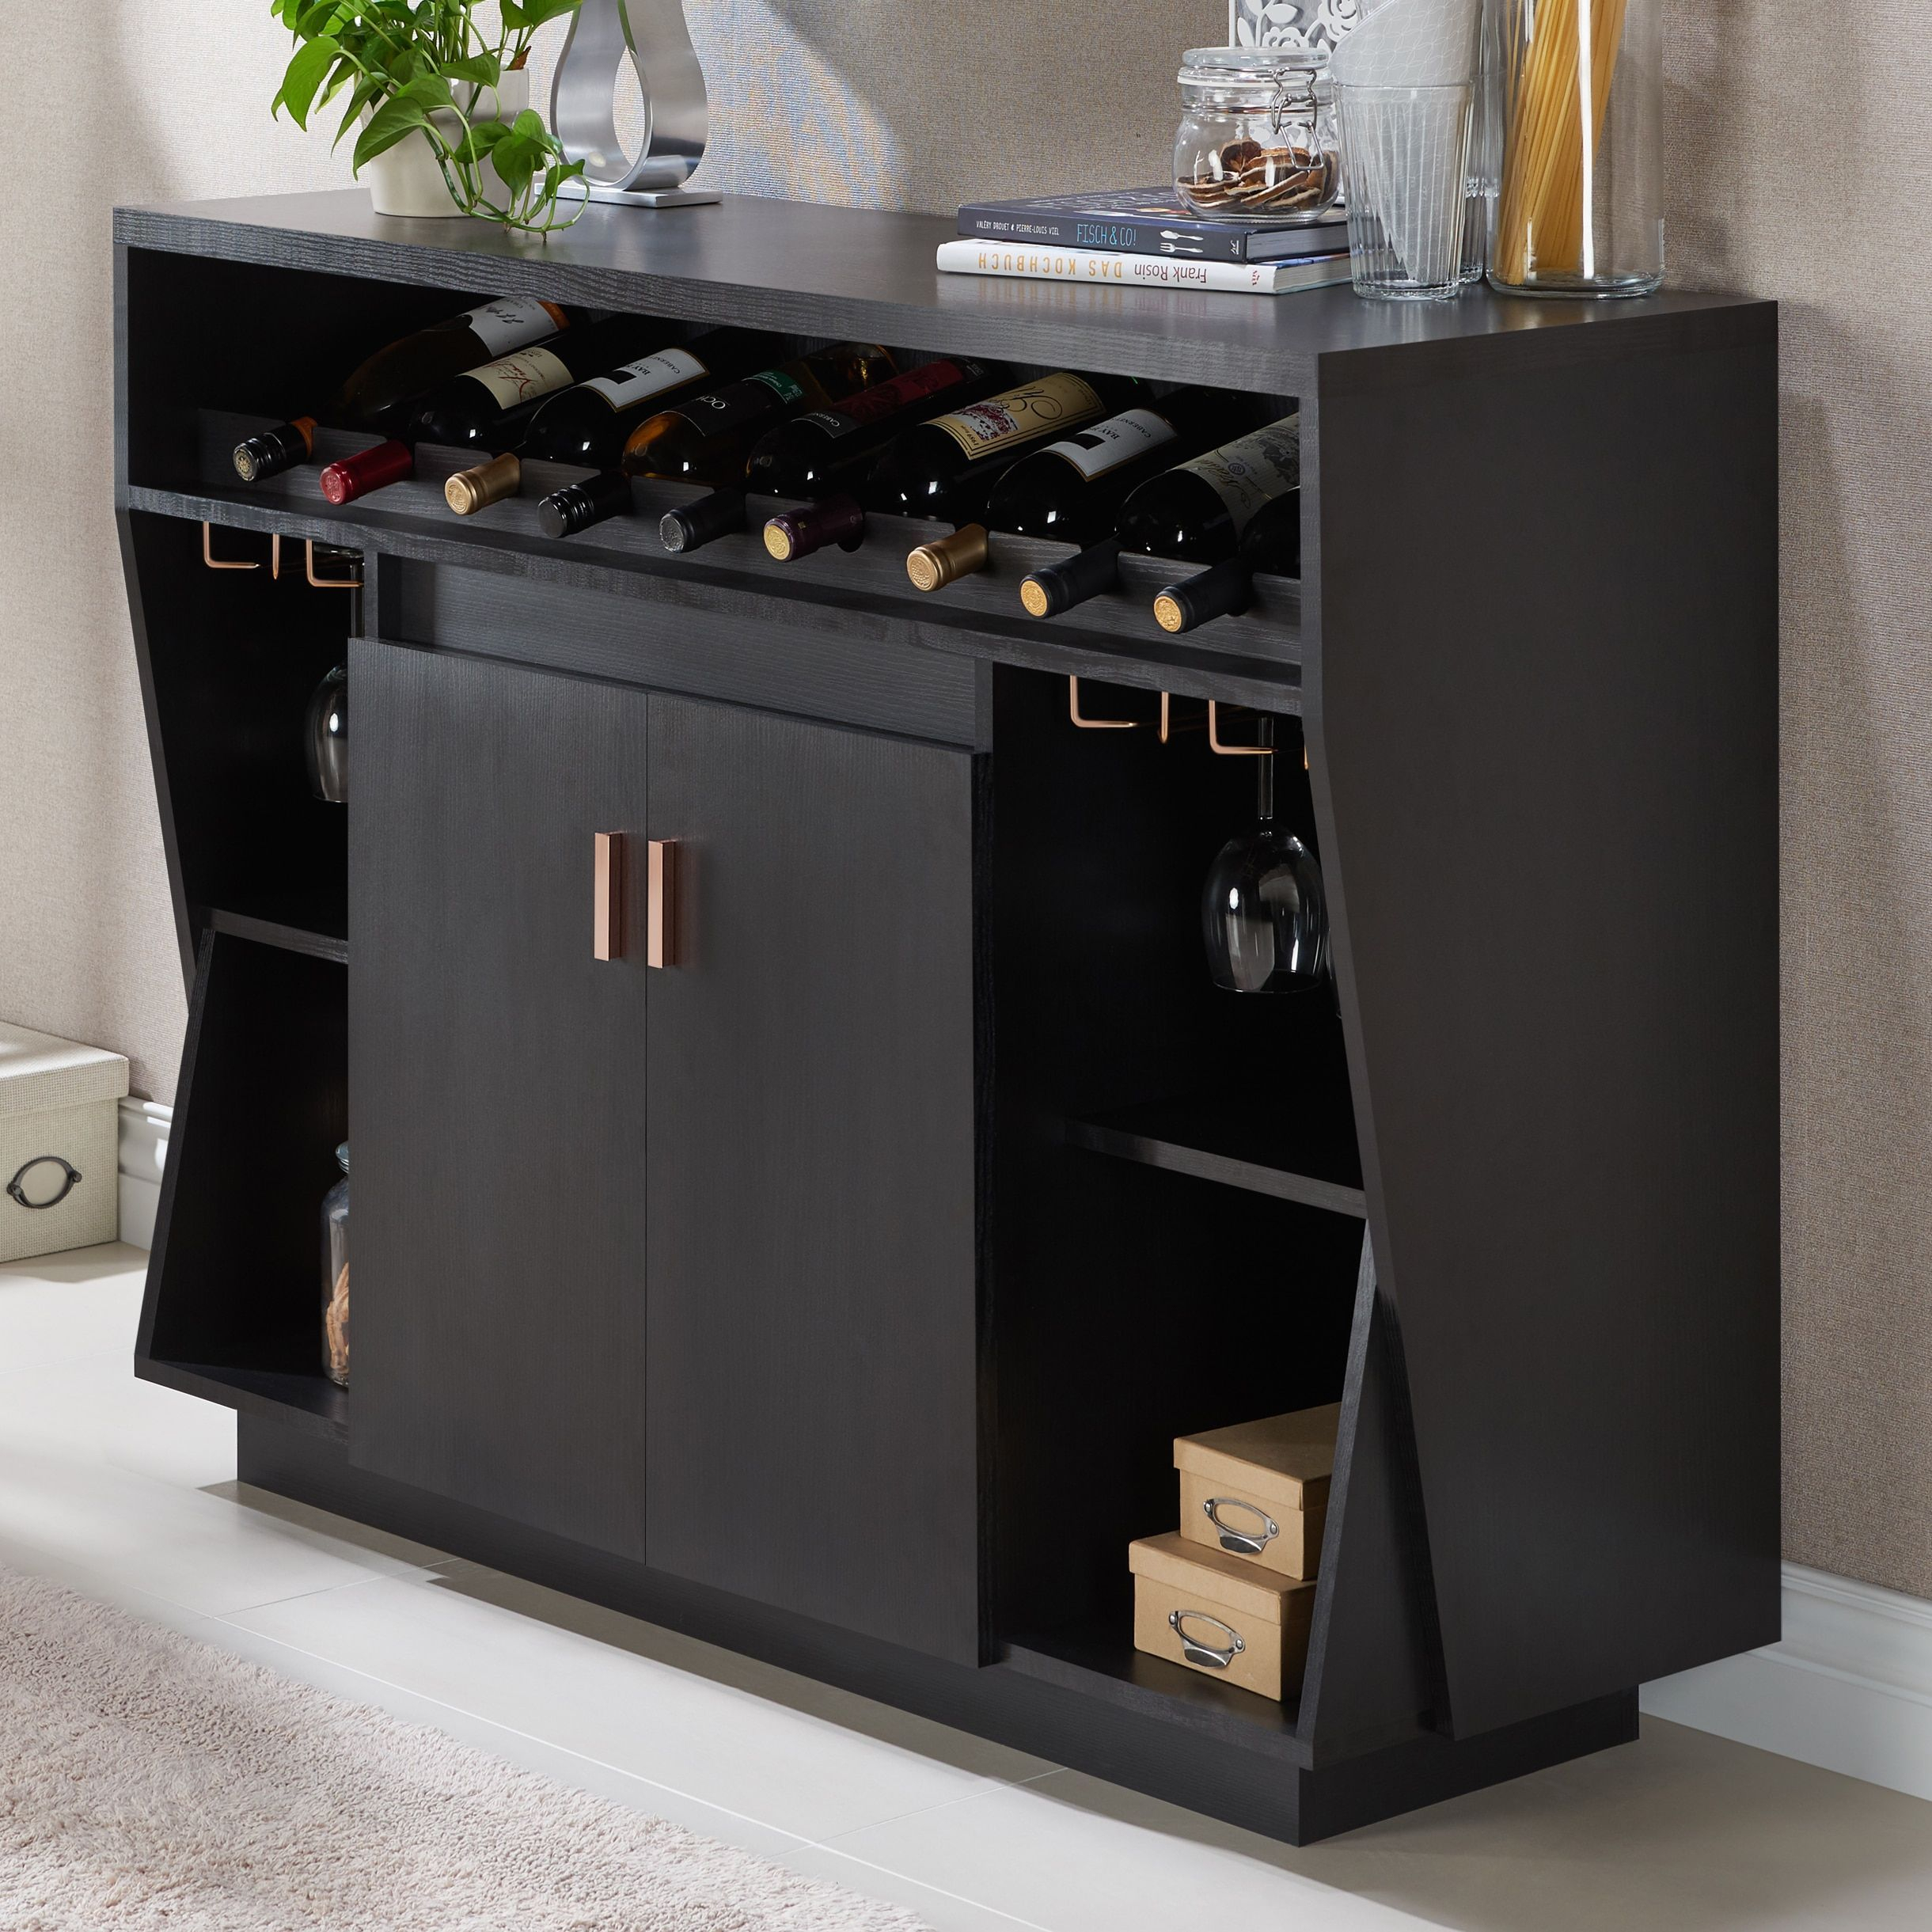 Furniture Of America Gergich Contemporary Angled Multi Regarding Contemporary Multi Storage Dining Buffets (View 14 of 30)